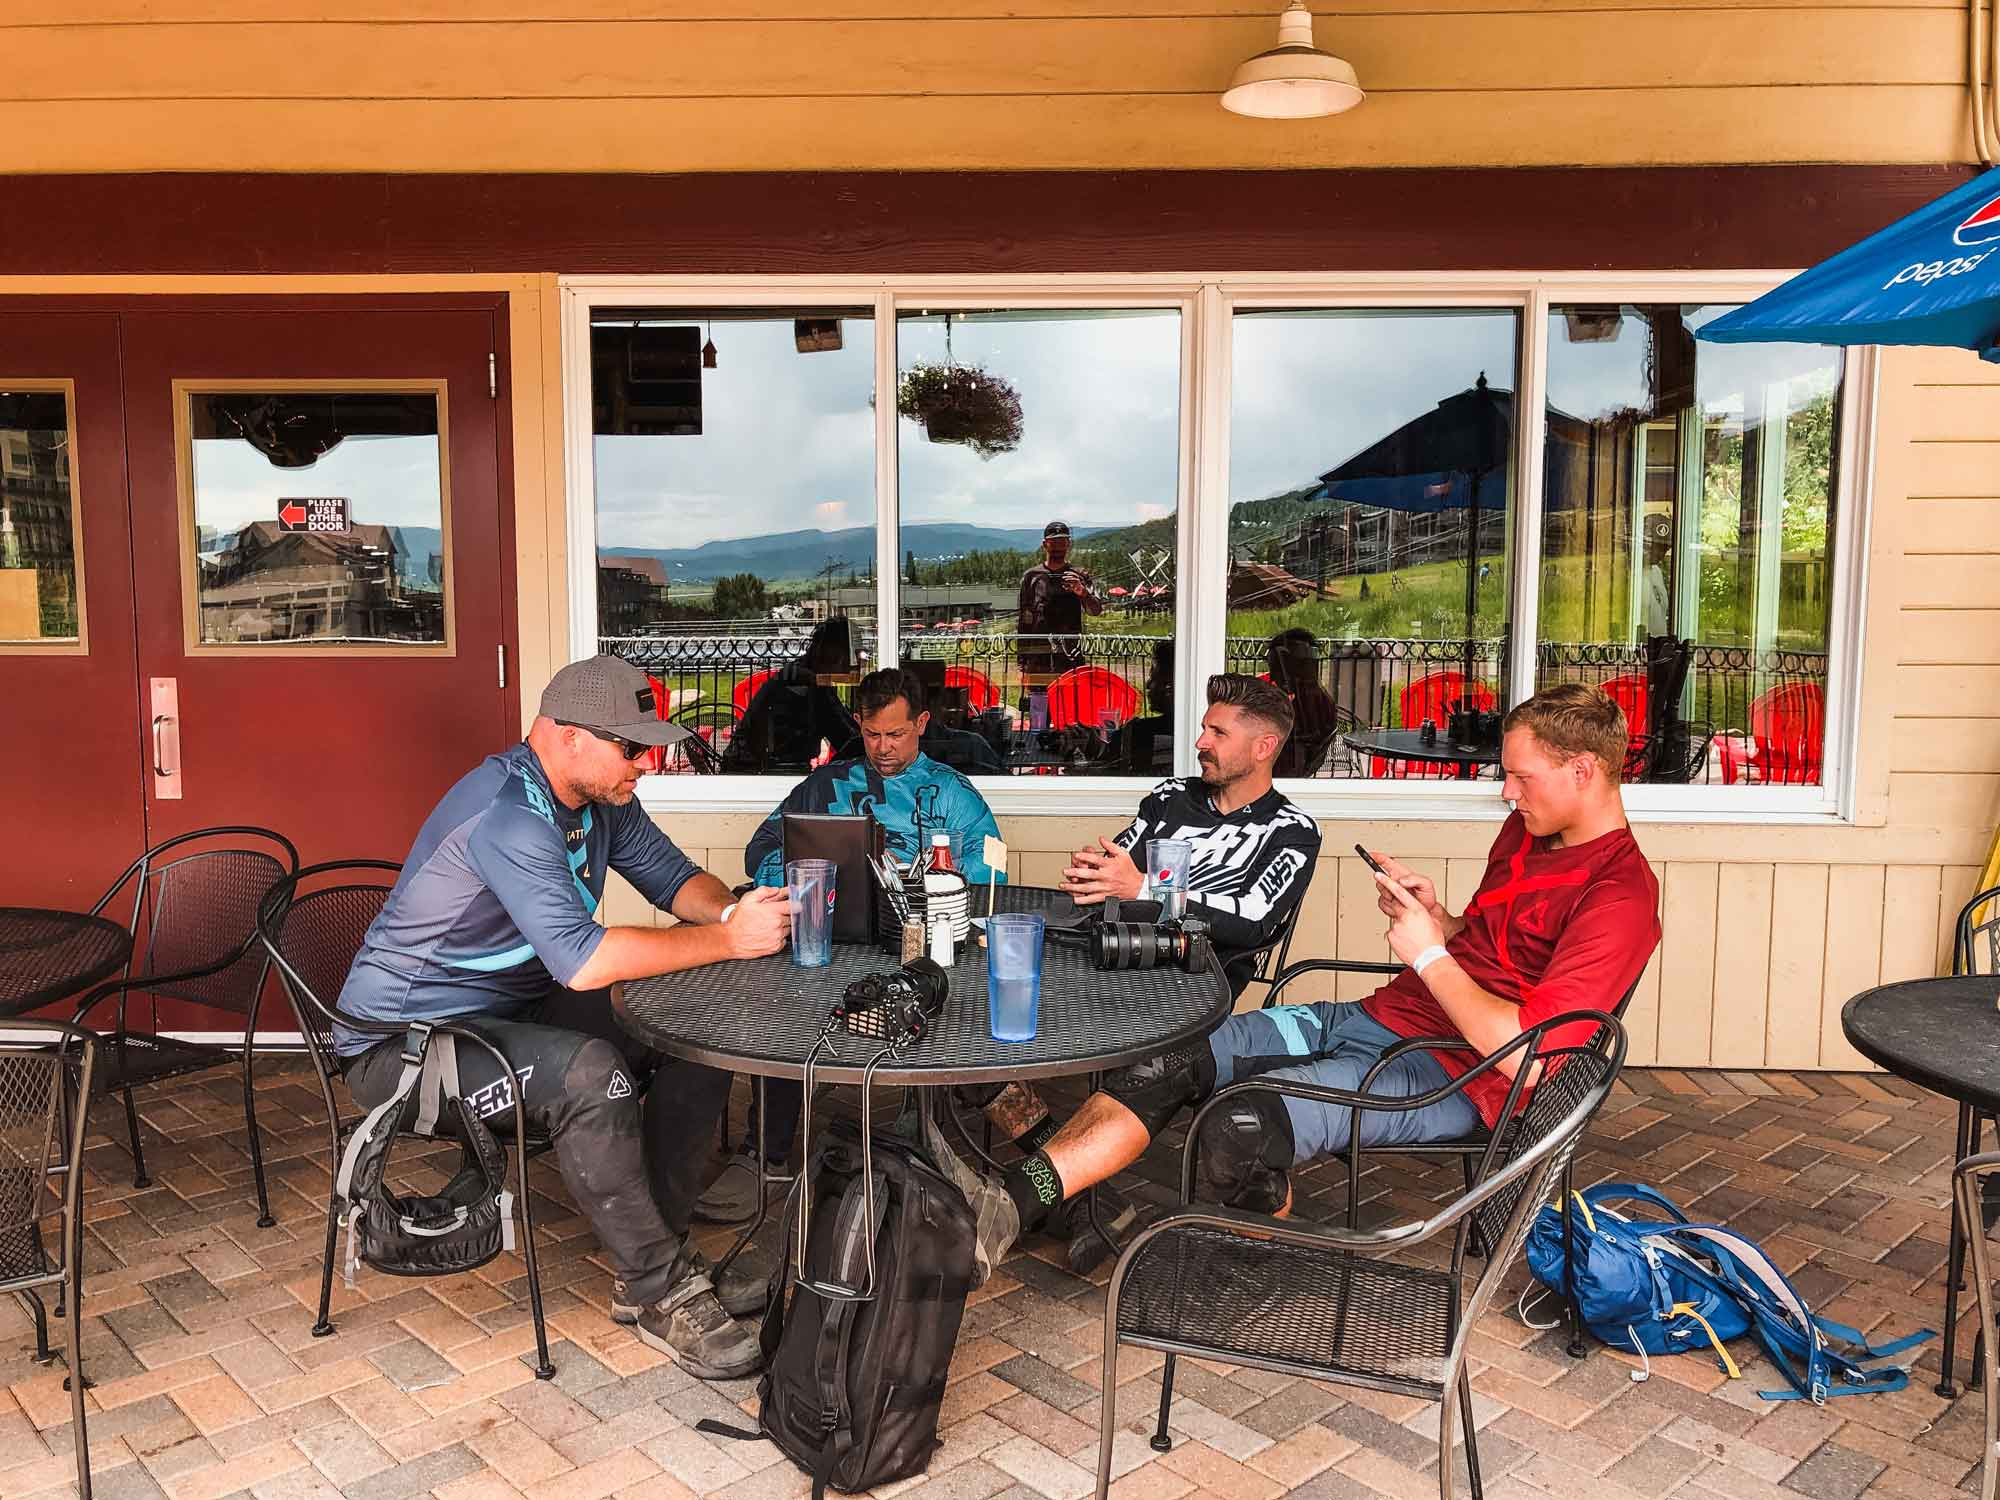 North American Bike Park Review Tour - Steamboat Springs Bike Park